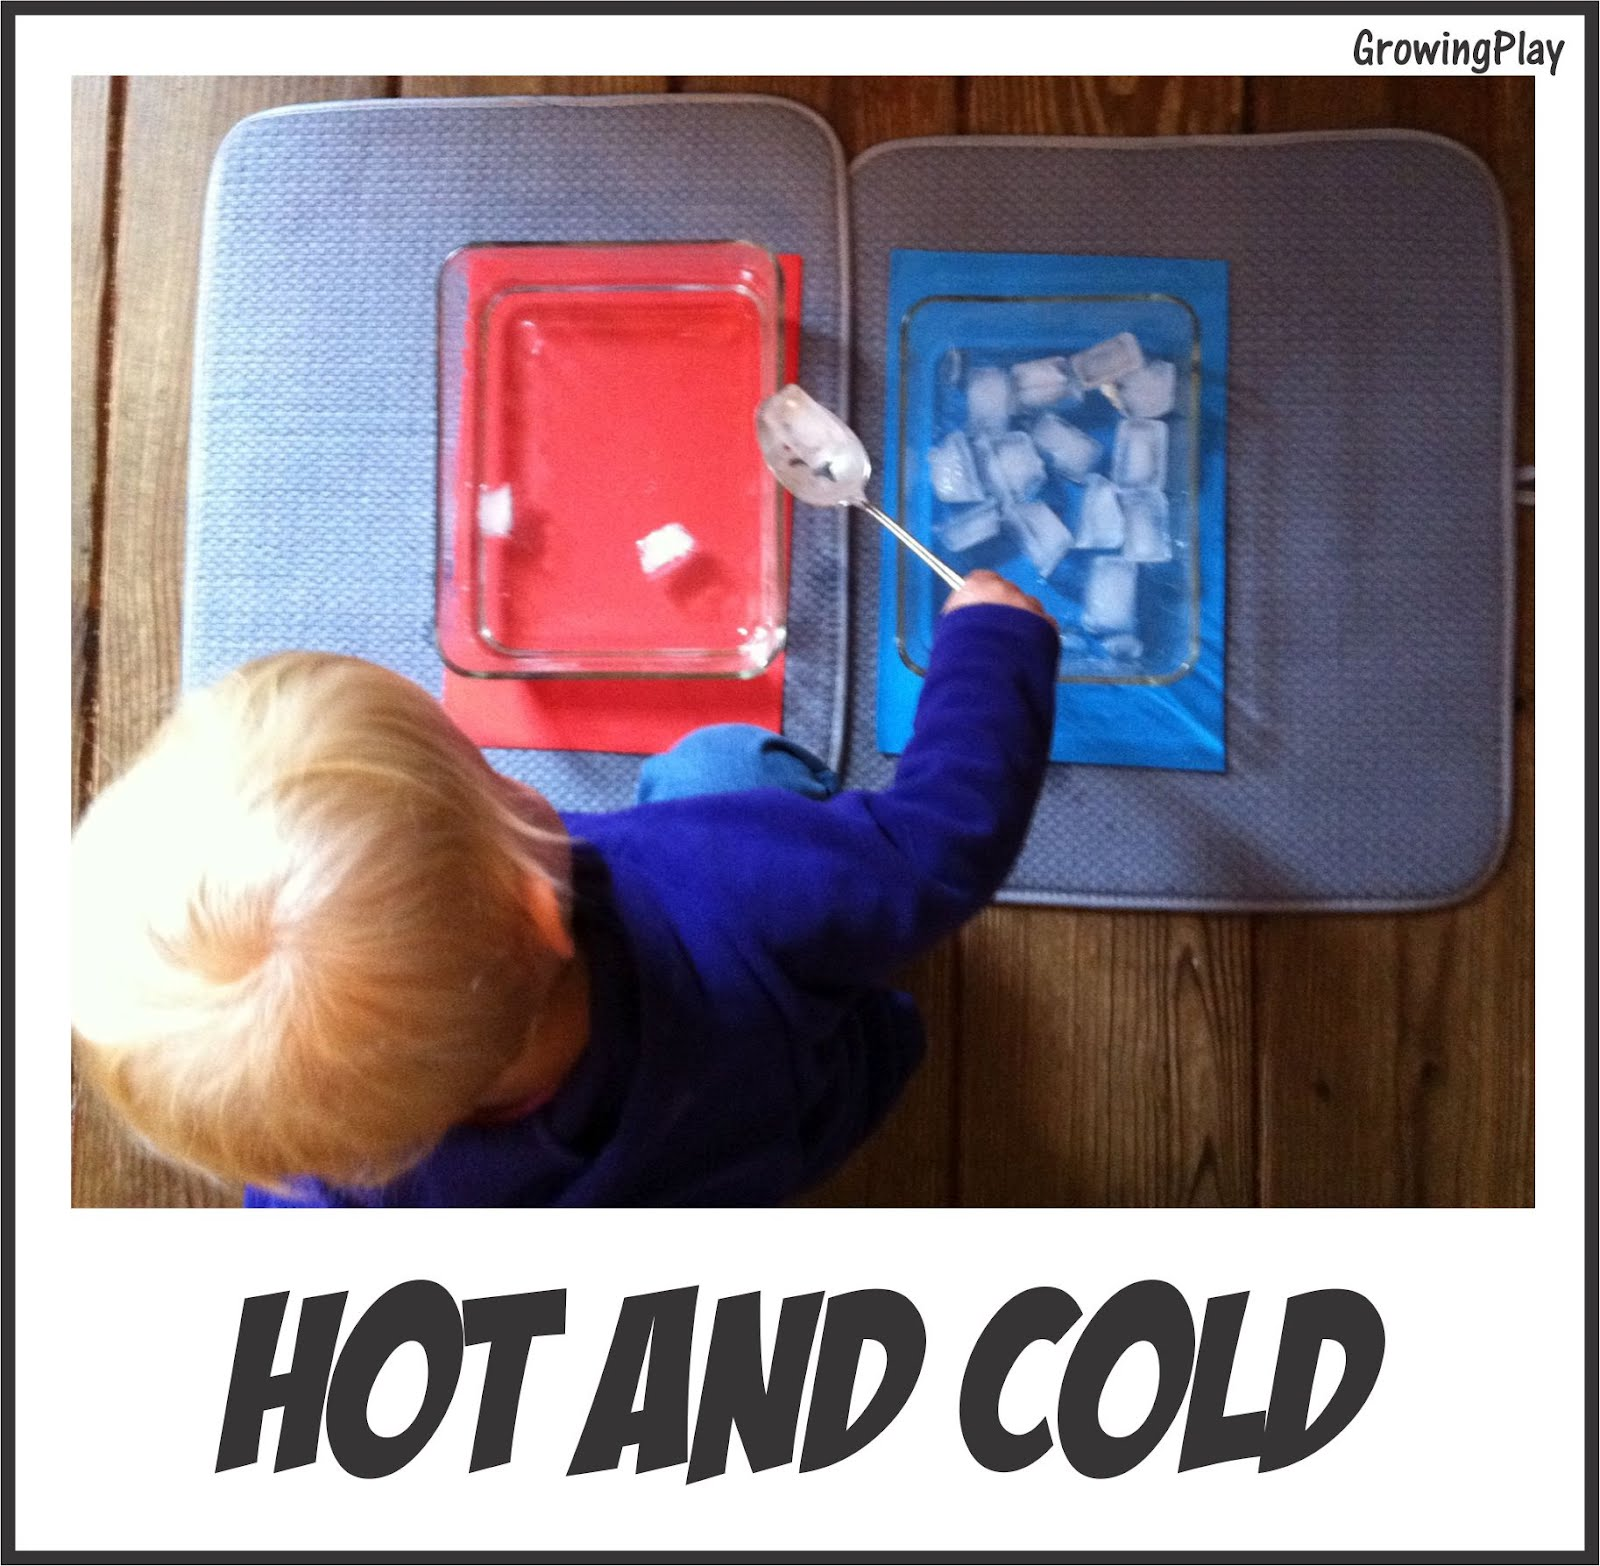 Playing hot and cold dating